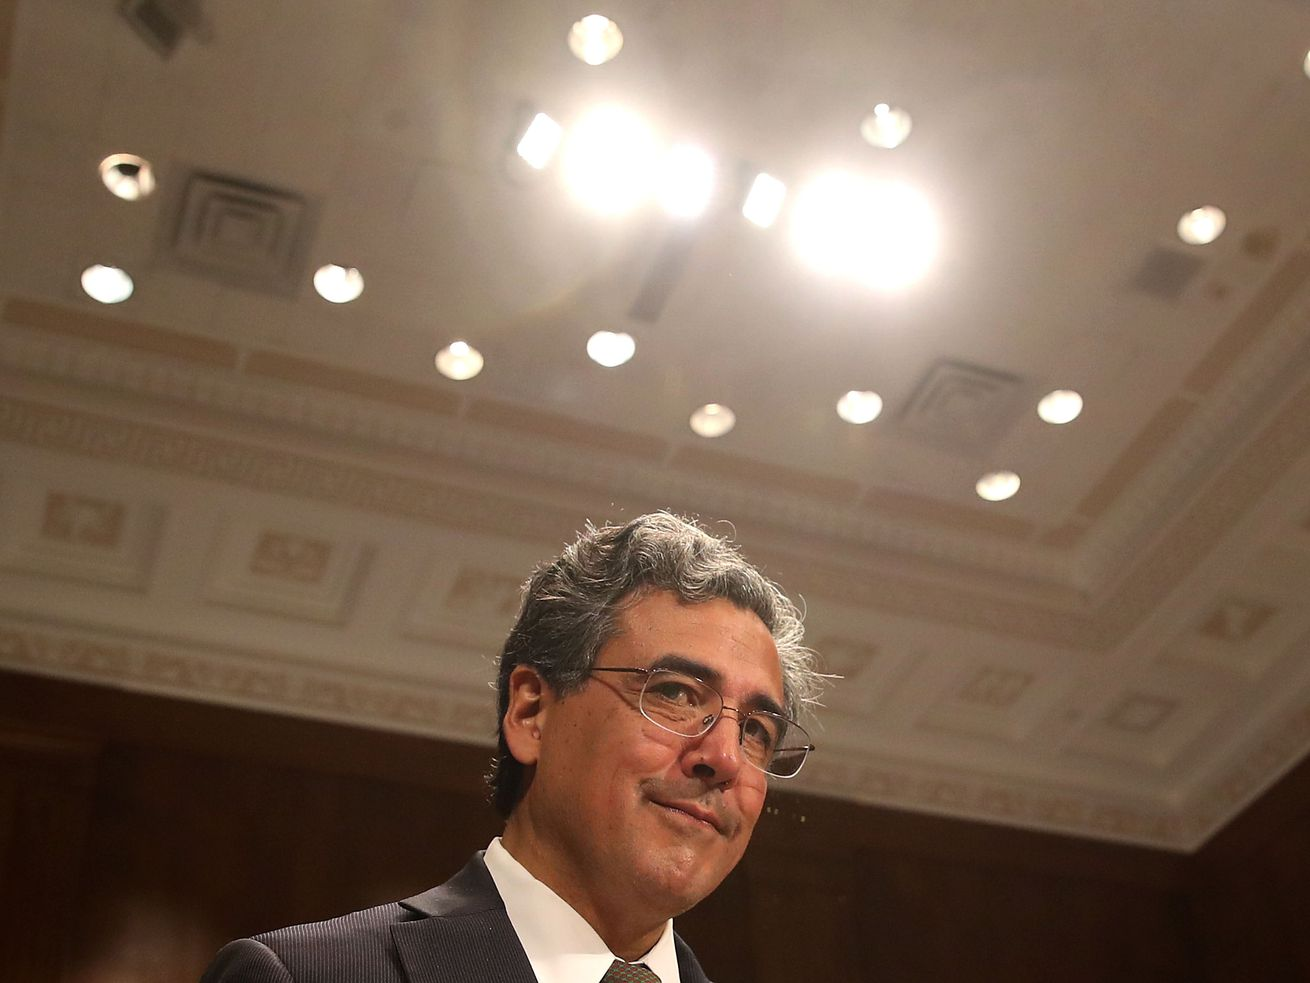 Solicitor General Noel Francisco on Capitol Hill in May 2017.